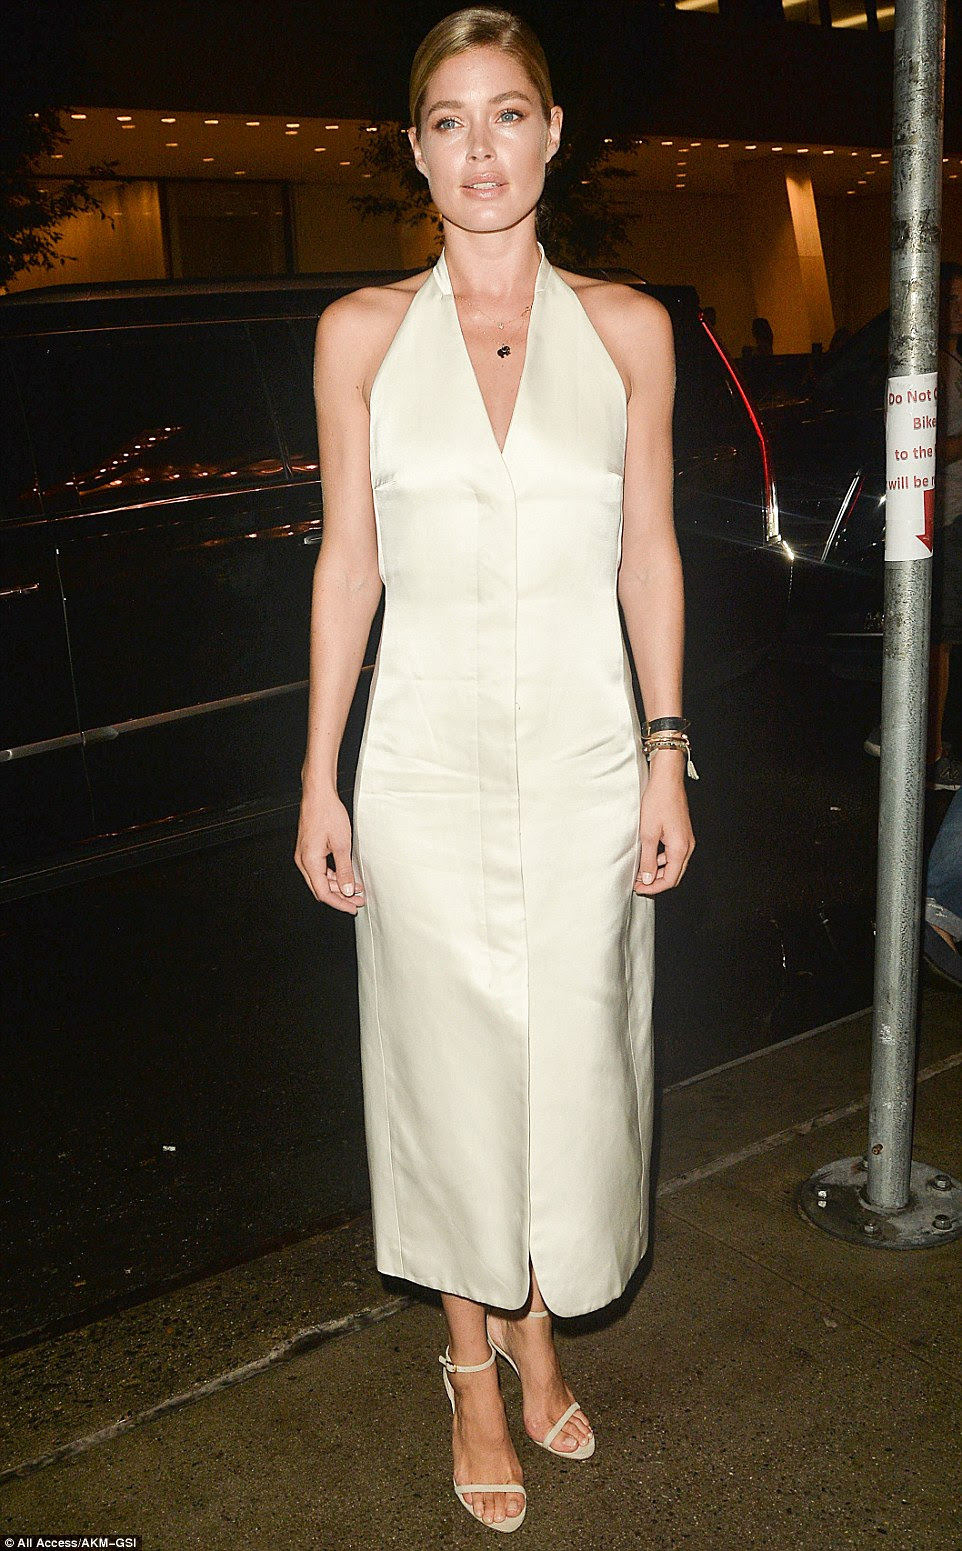 Angelic: Victoria's Secret Angel Doutzen Kroes was a vision in white as she headed to the event alongside her fashionable peers